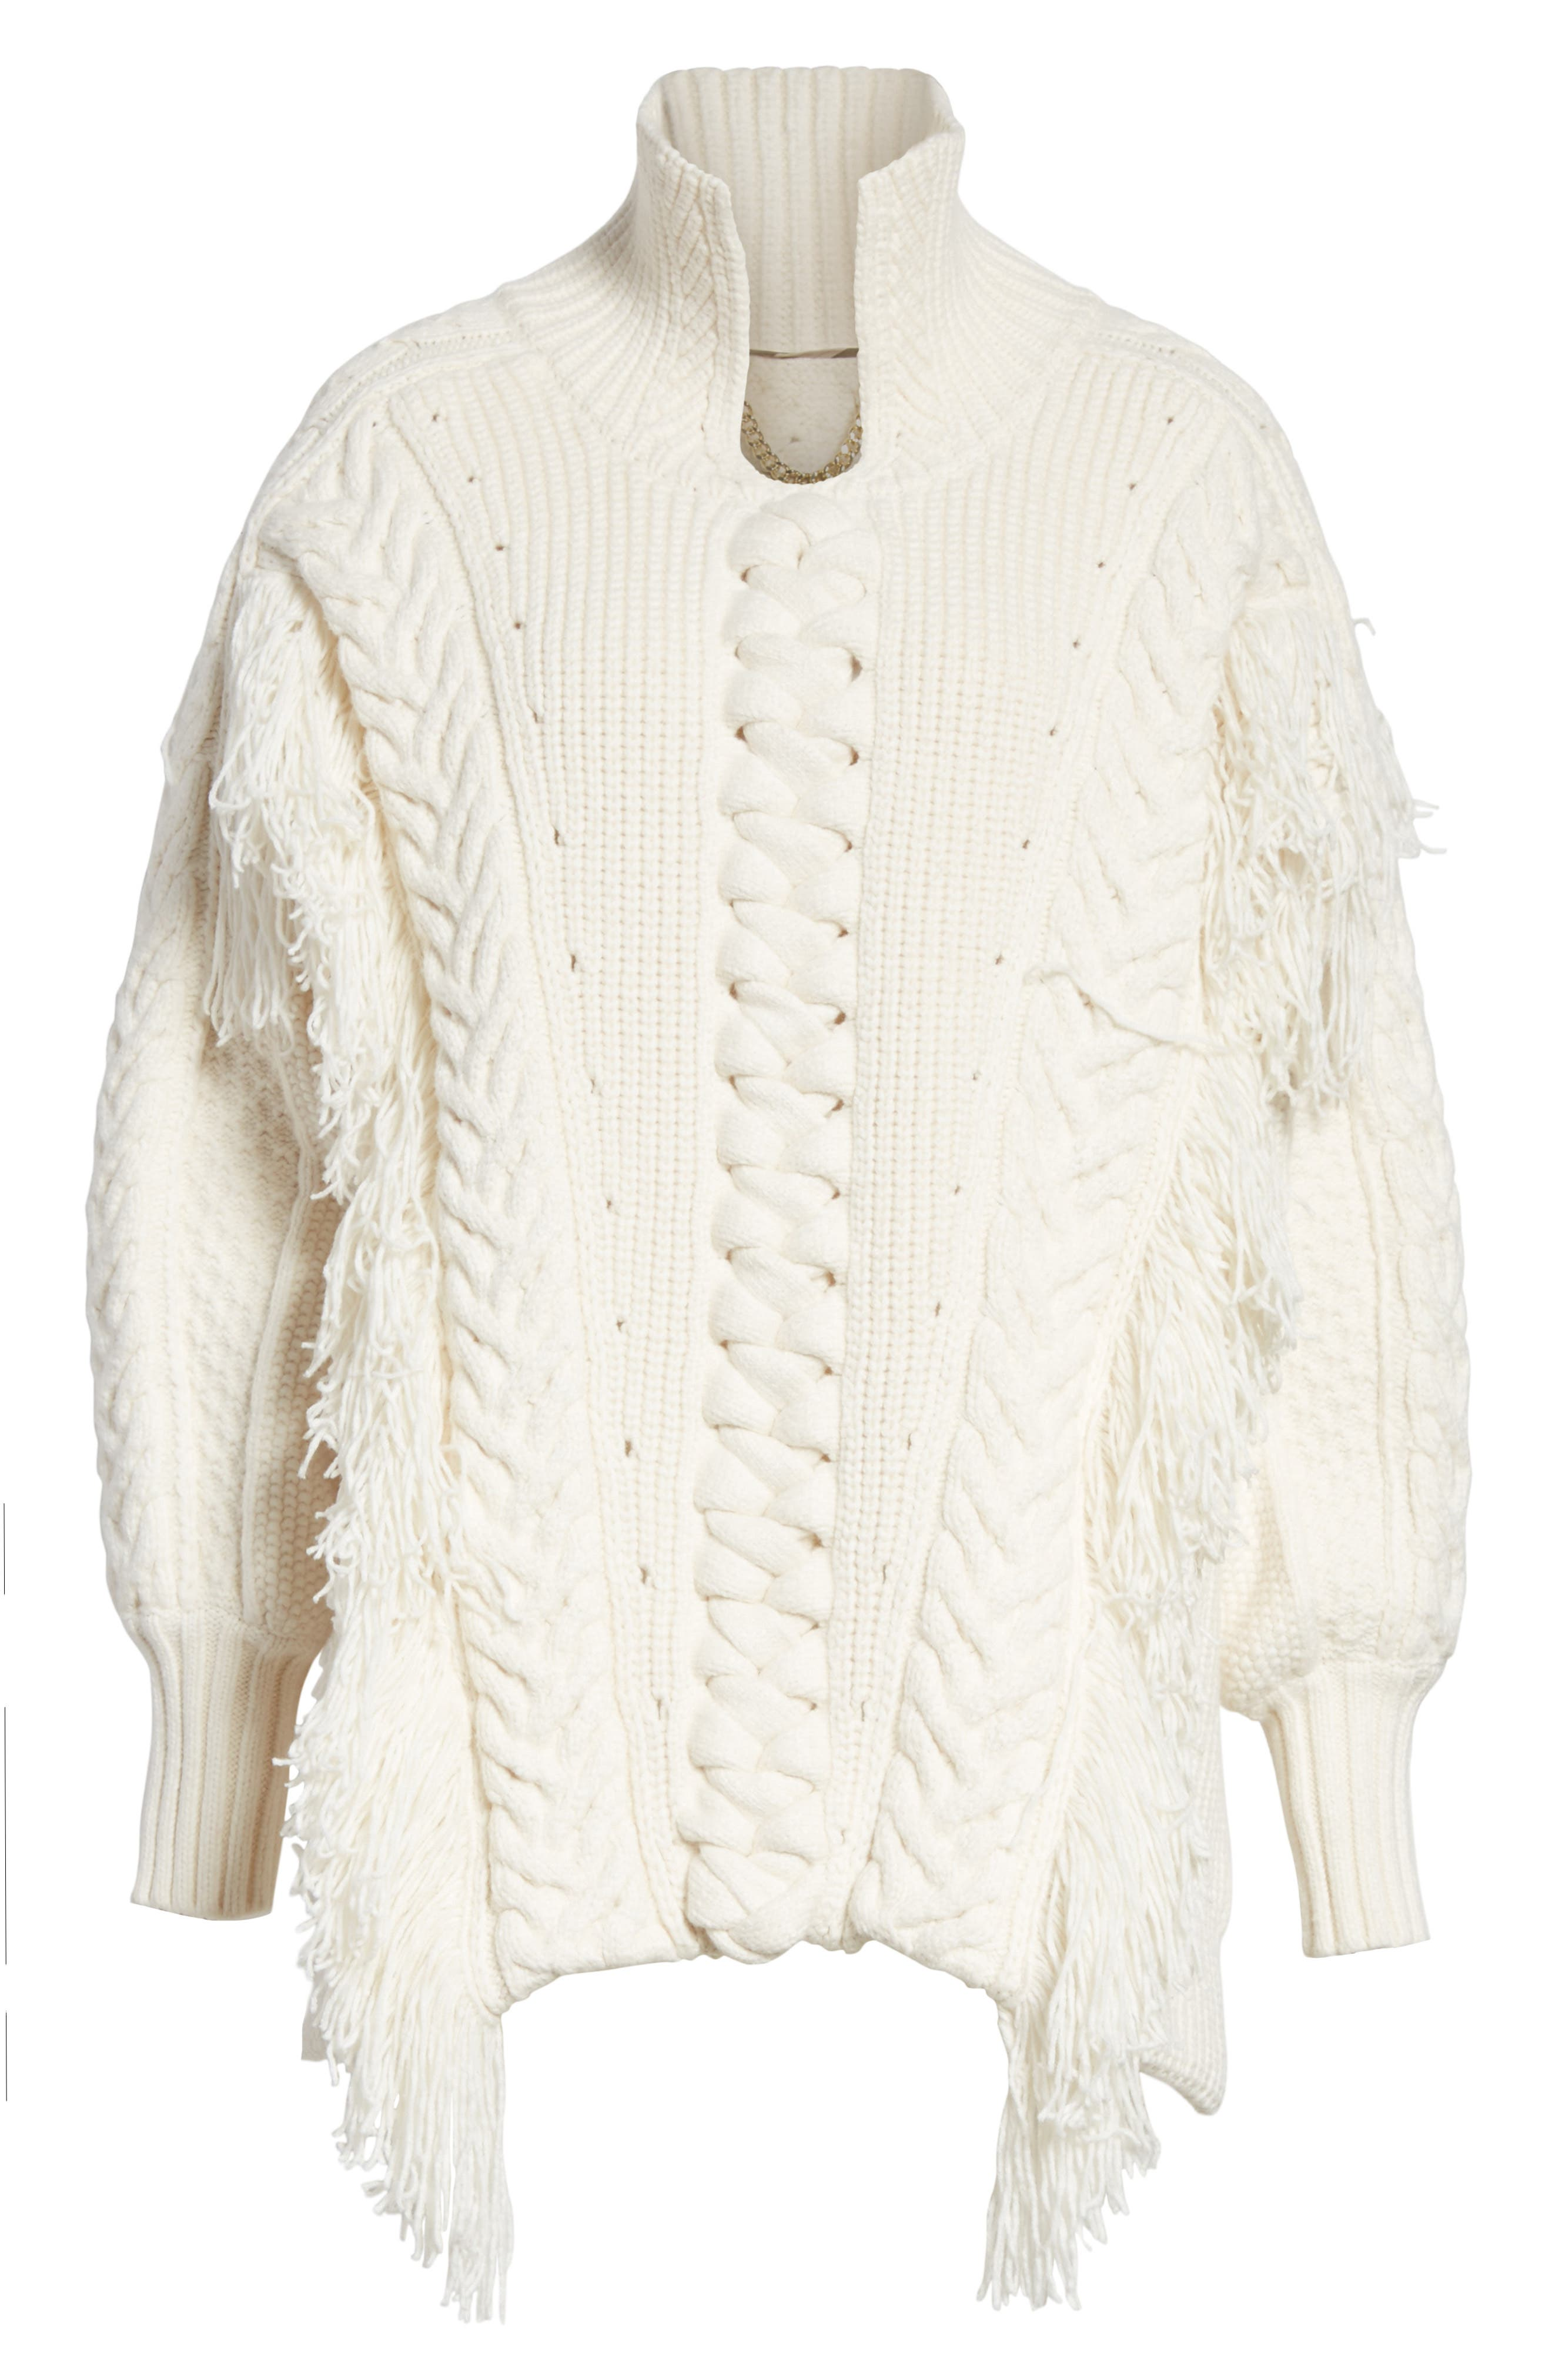 Borbore Fringed Cable Knit Sweater,                             Alternate thumbnail 6, color,                             103